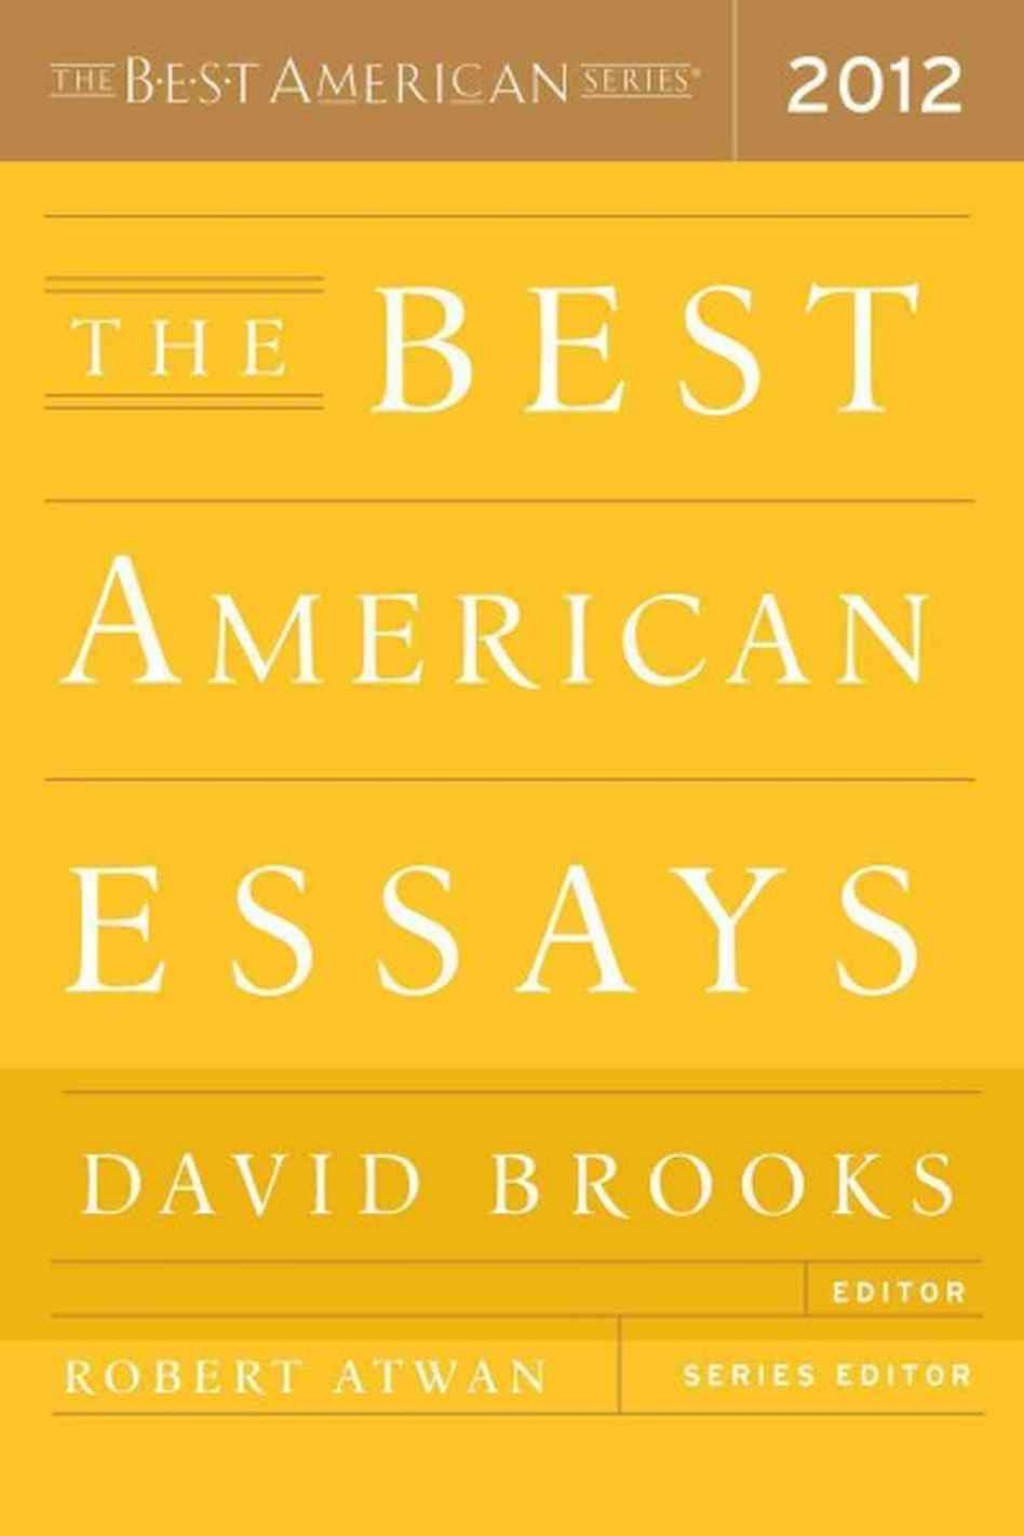 012 The Best American Essays 2012 Essay Wonderful Of Century Table Contents 2013 Pdf Download Large